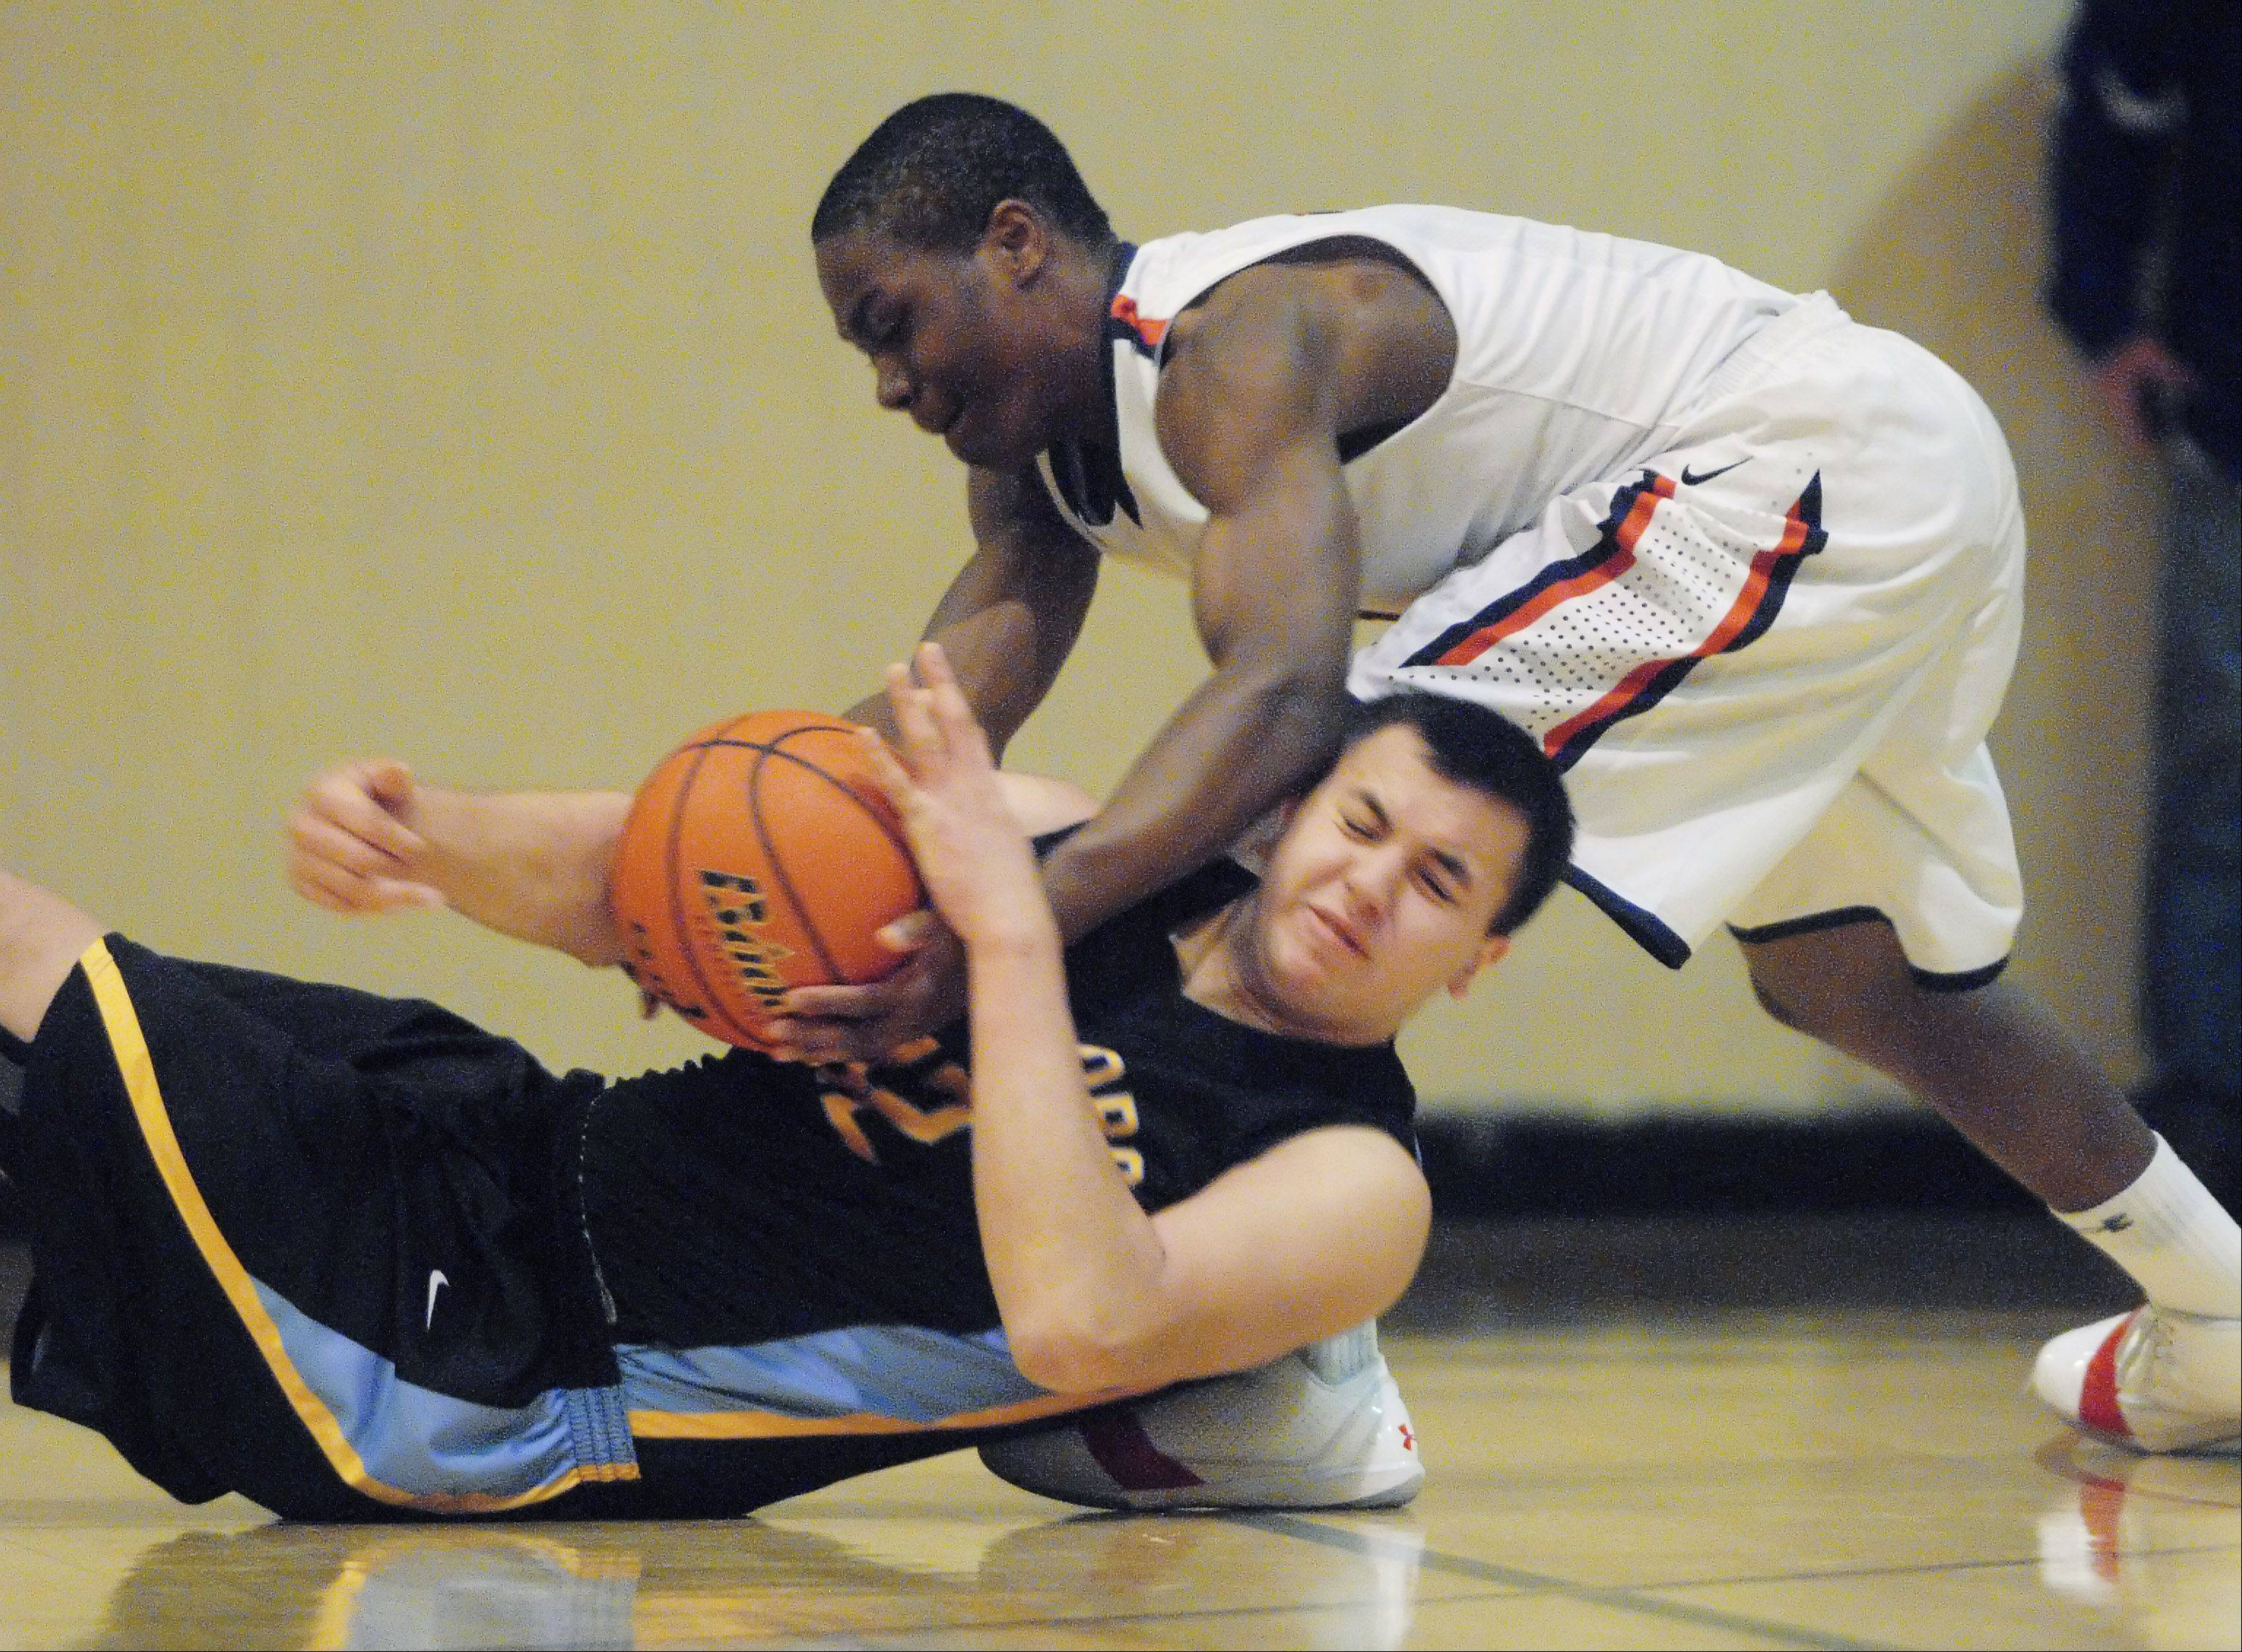 St. Viator's Mayo Arogundade steals the ball from Maine West's Matt Solis during Tuesday night's basketball game in Wheeling.